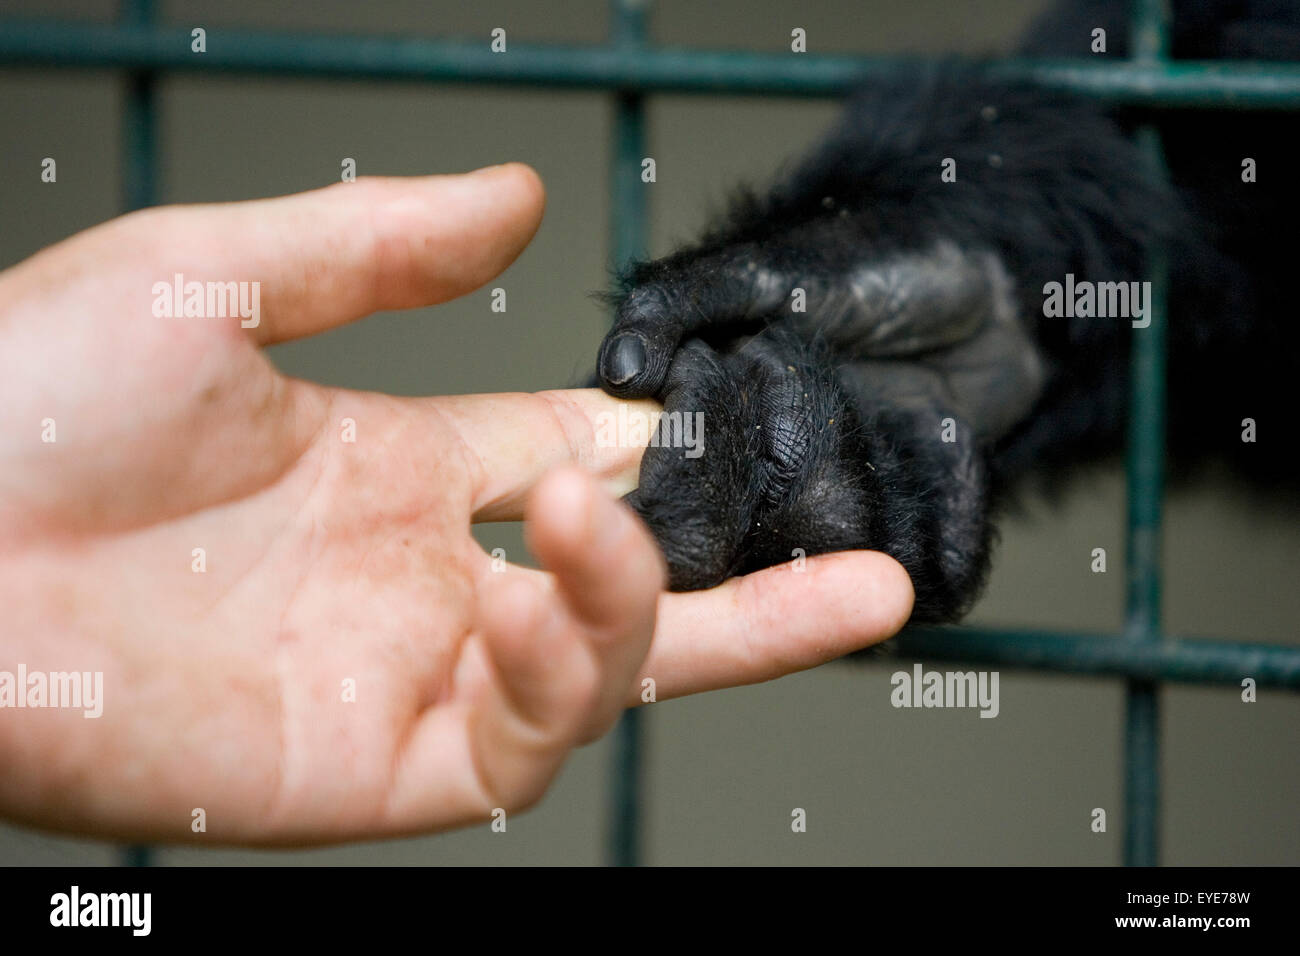 Zoo animals - Stock Image